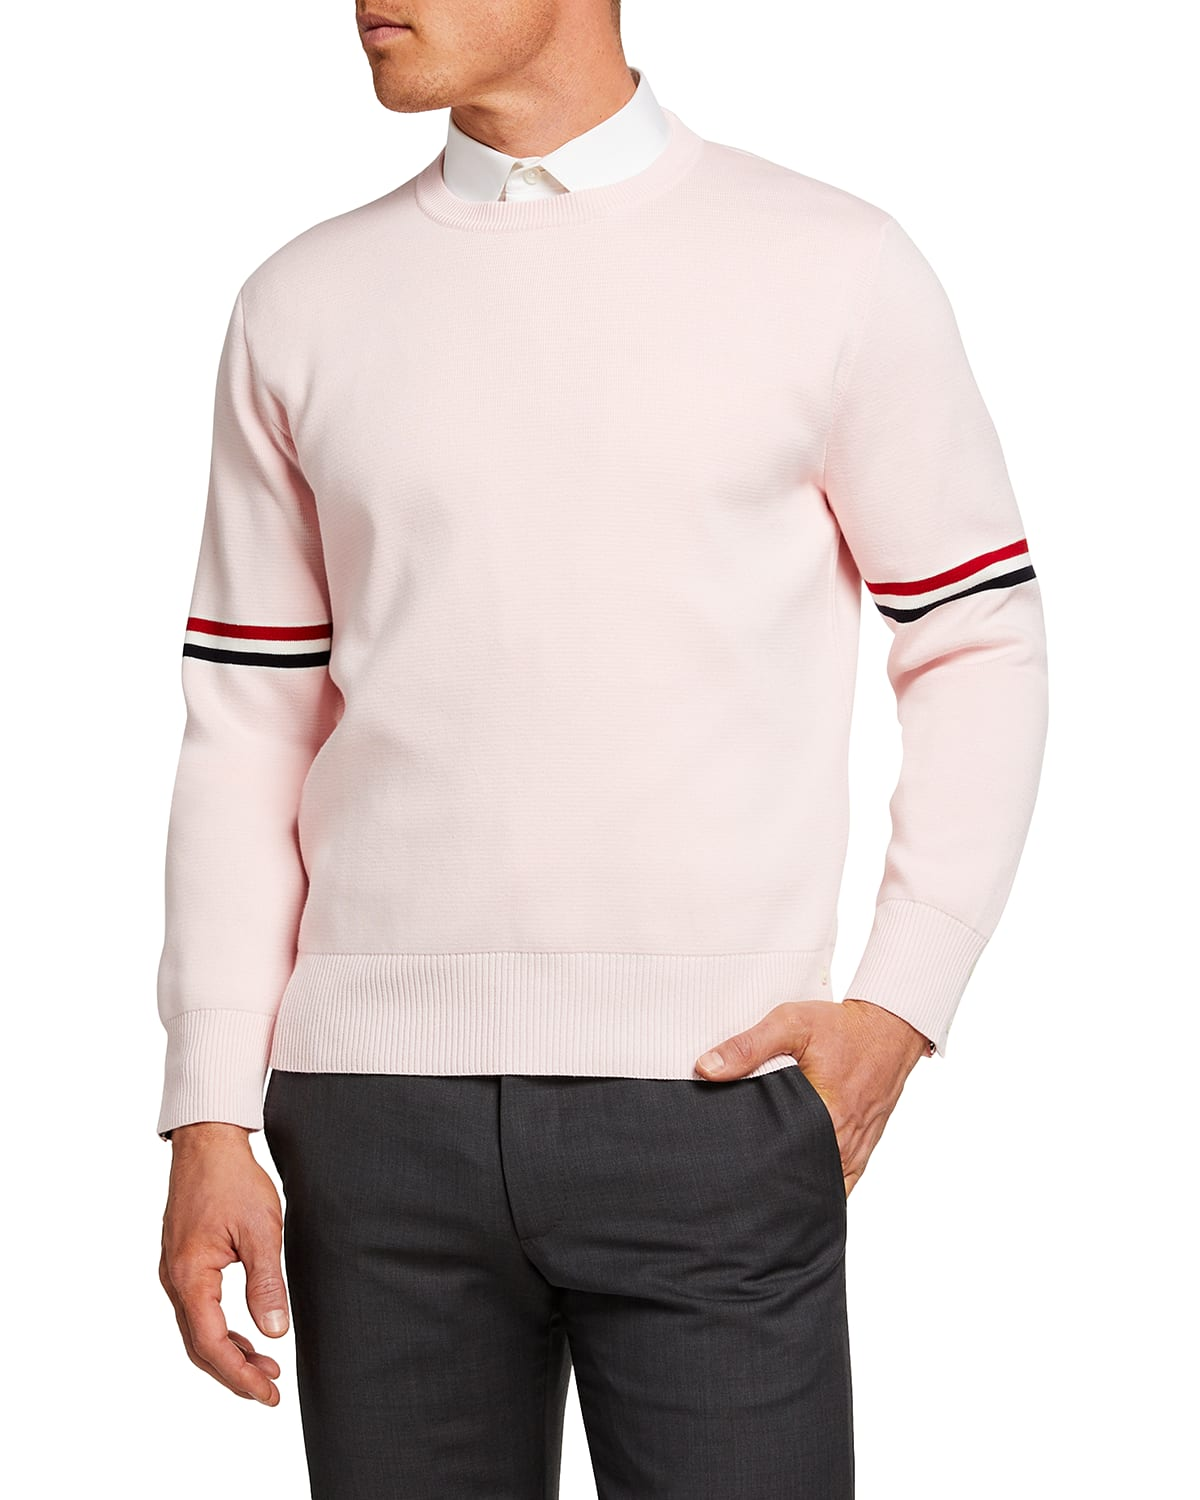 Men's Crew Sweater with Ribbon Arm Bands